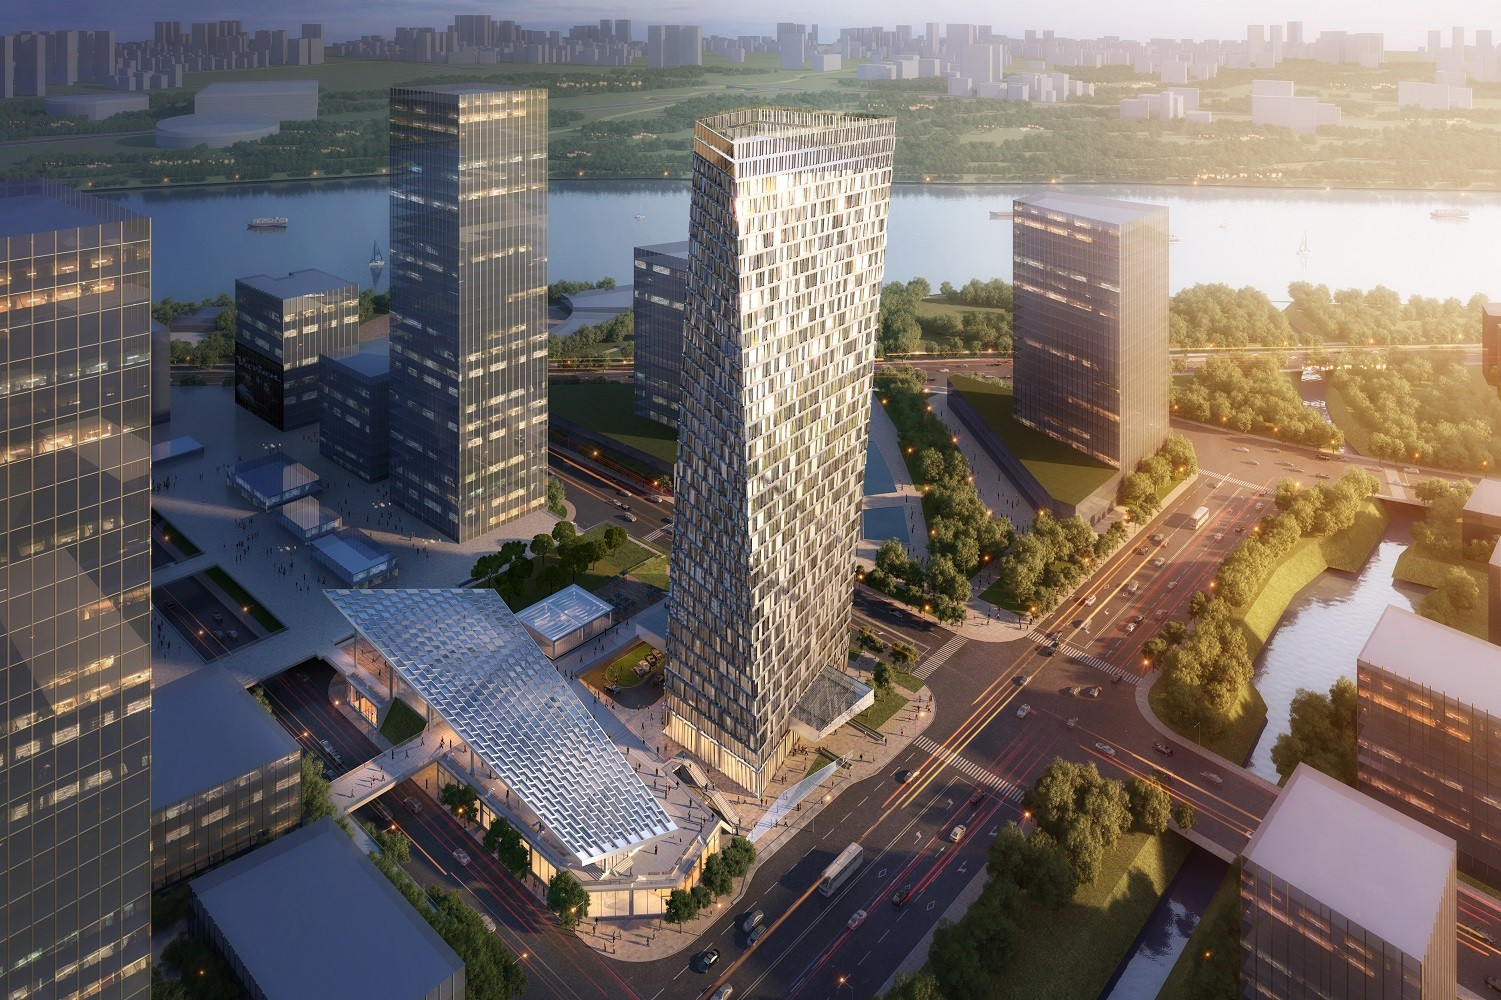 Xuhui Binjian Media City 188S-G-1 Tower and Podium Winning Proposal / Aedas, Courtesy of Aedas